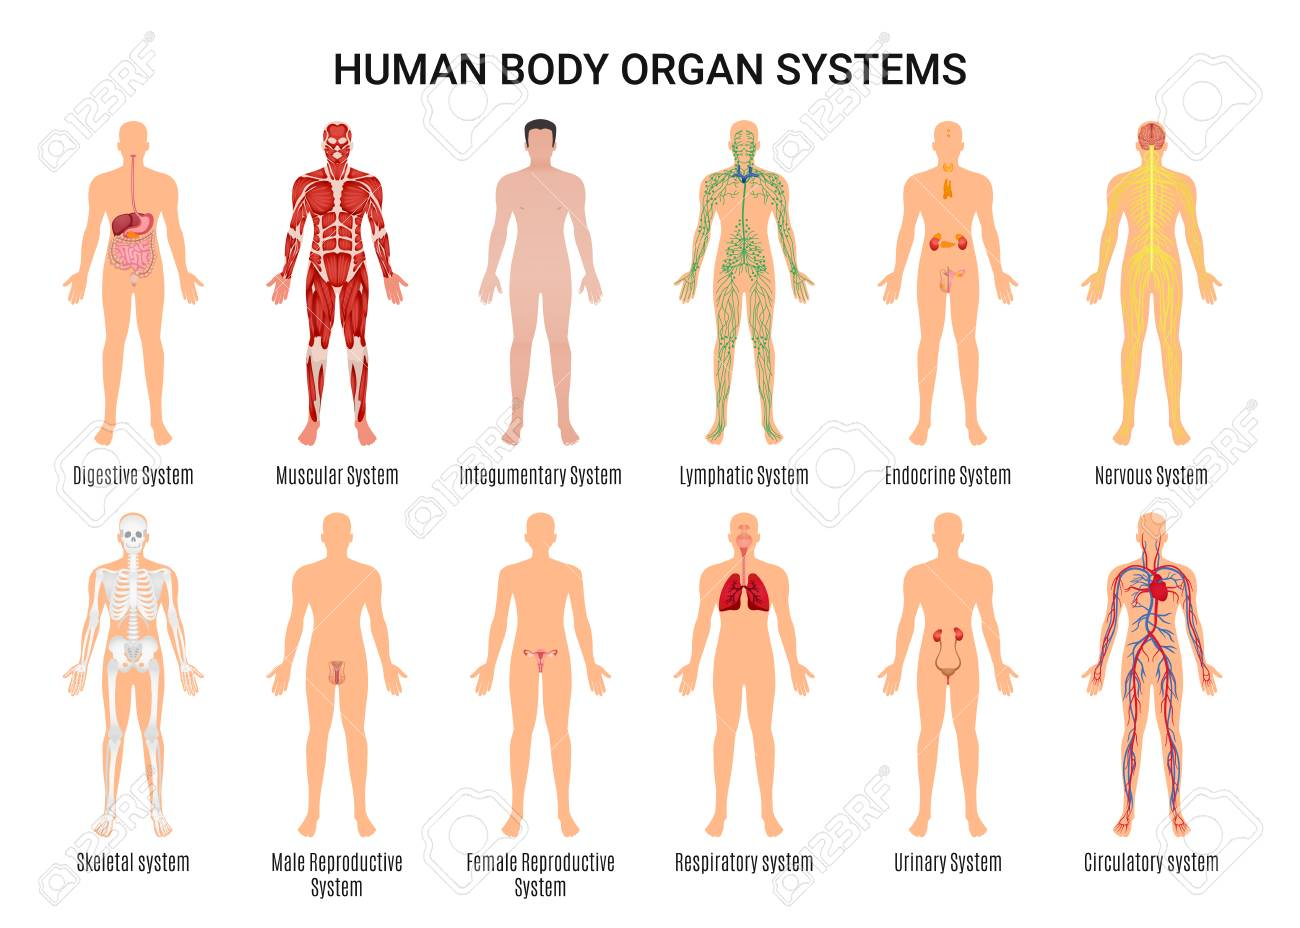 Main 12 Human Body Organ Systems Flat Educative Anatomy Physiology